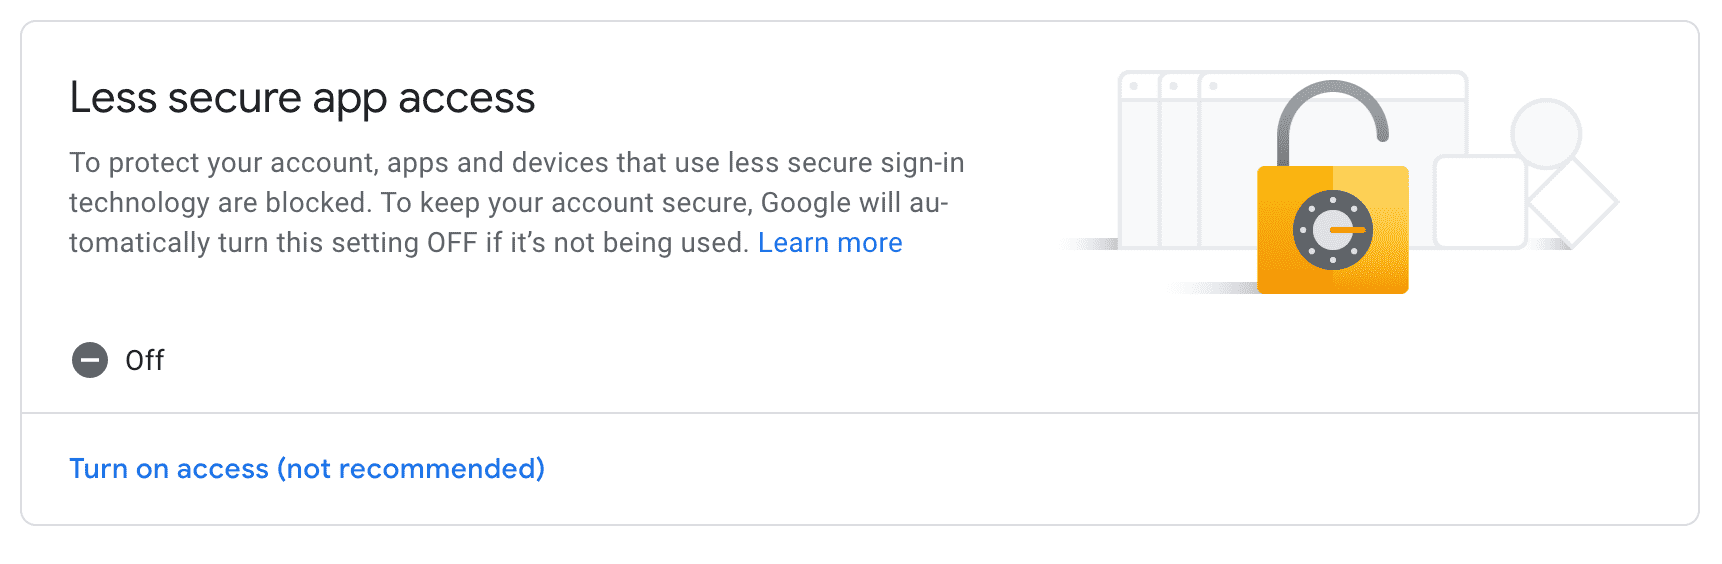 less_secure_app_access_main_page.png